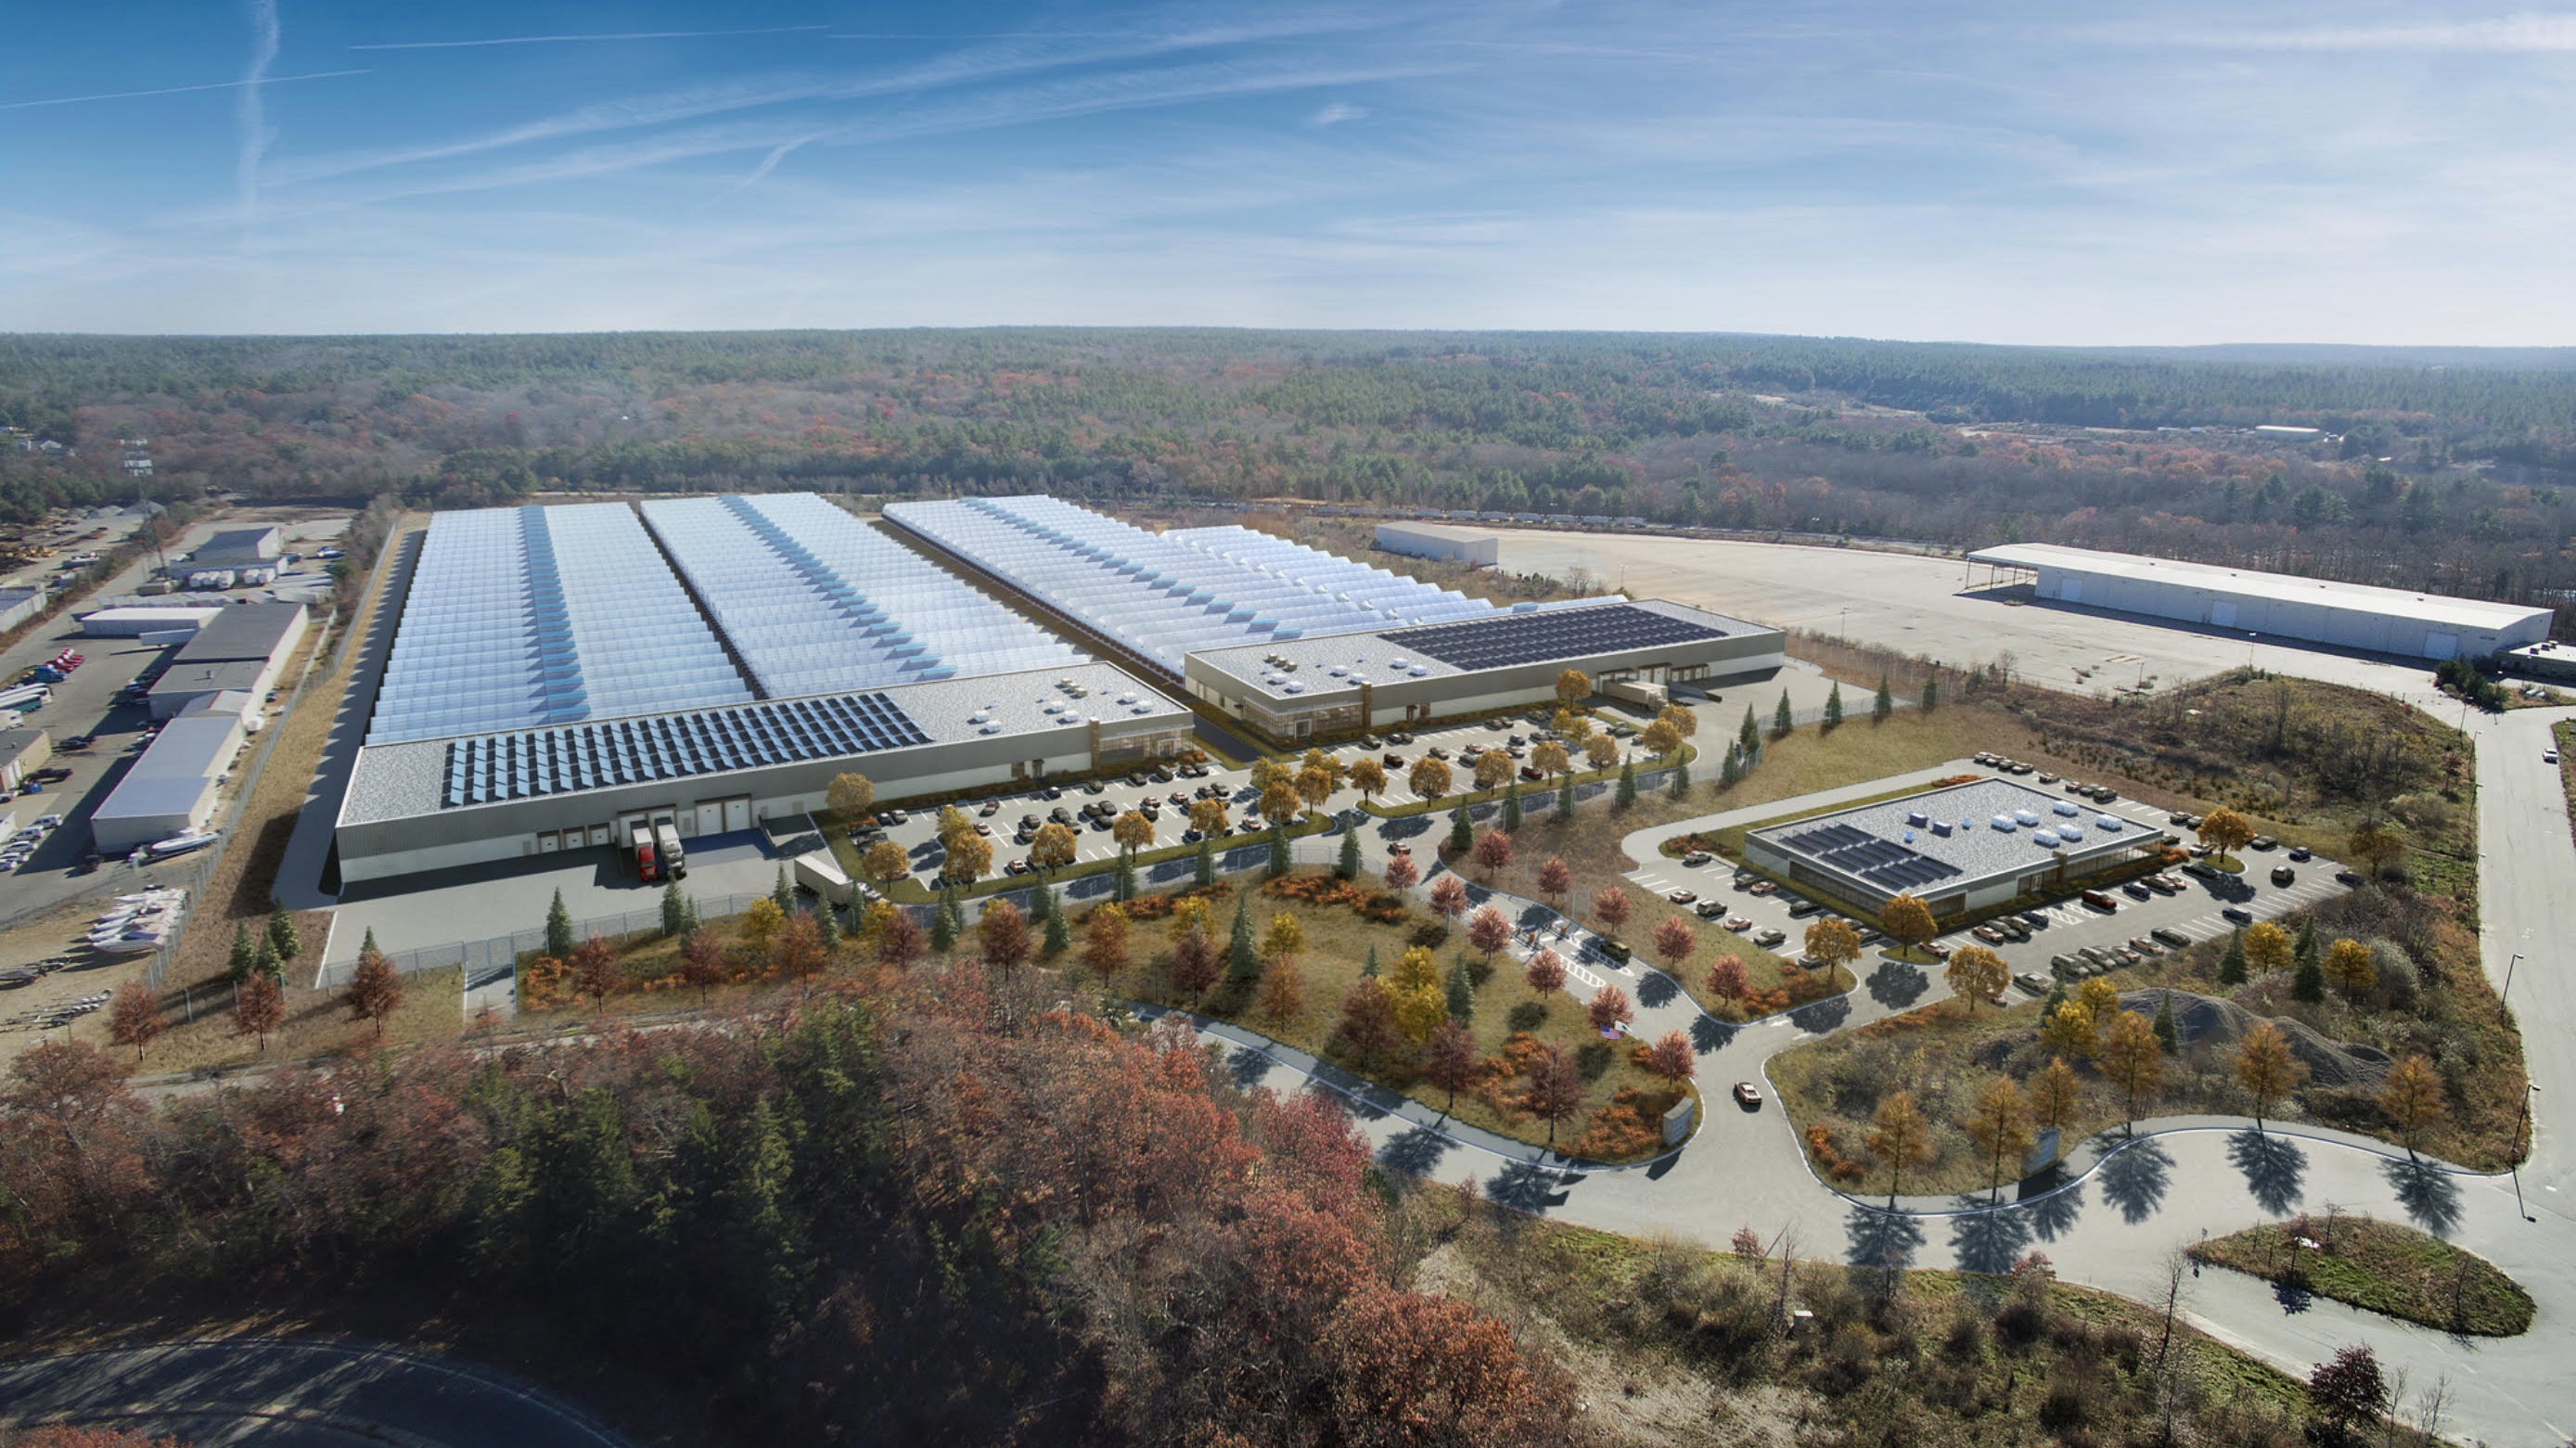 The biggest marijuana grow facility in the US will open in